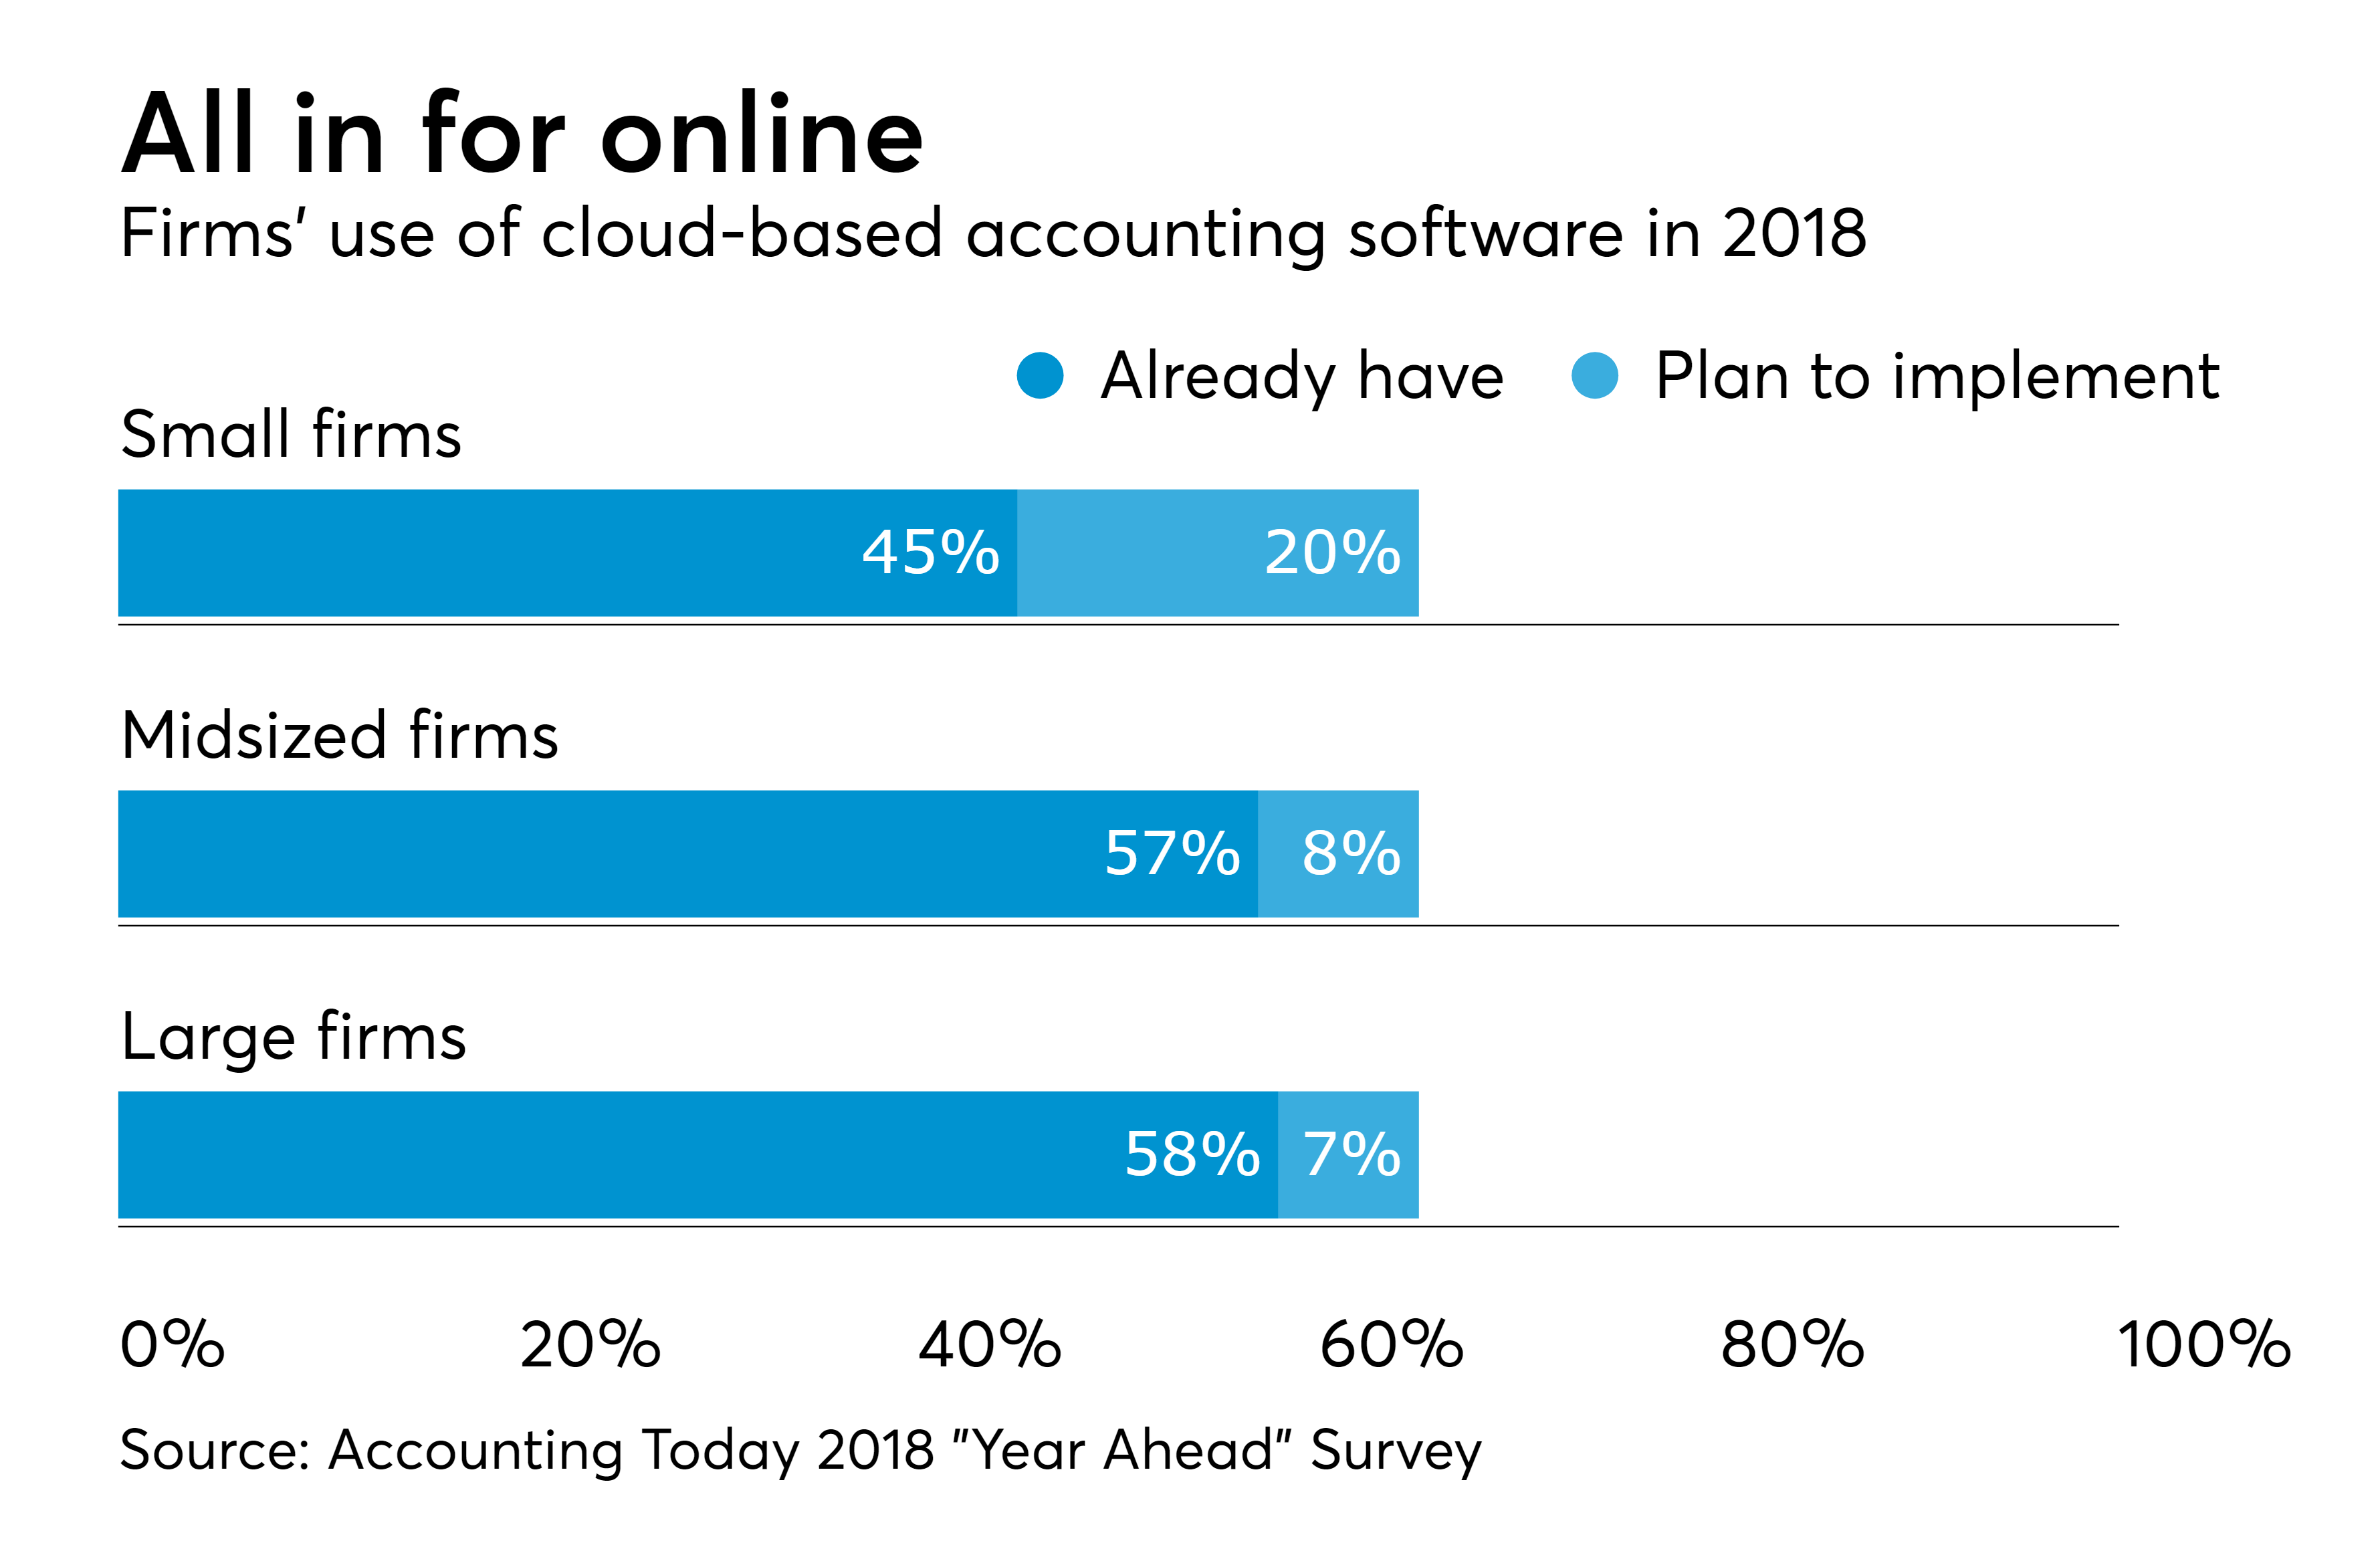 https://assets.sourcemedia.com/8f/54/2aaee9bf4e67831dbe330fd1f4e9/at-040418-cloudaccountingplans.png